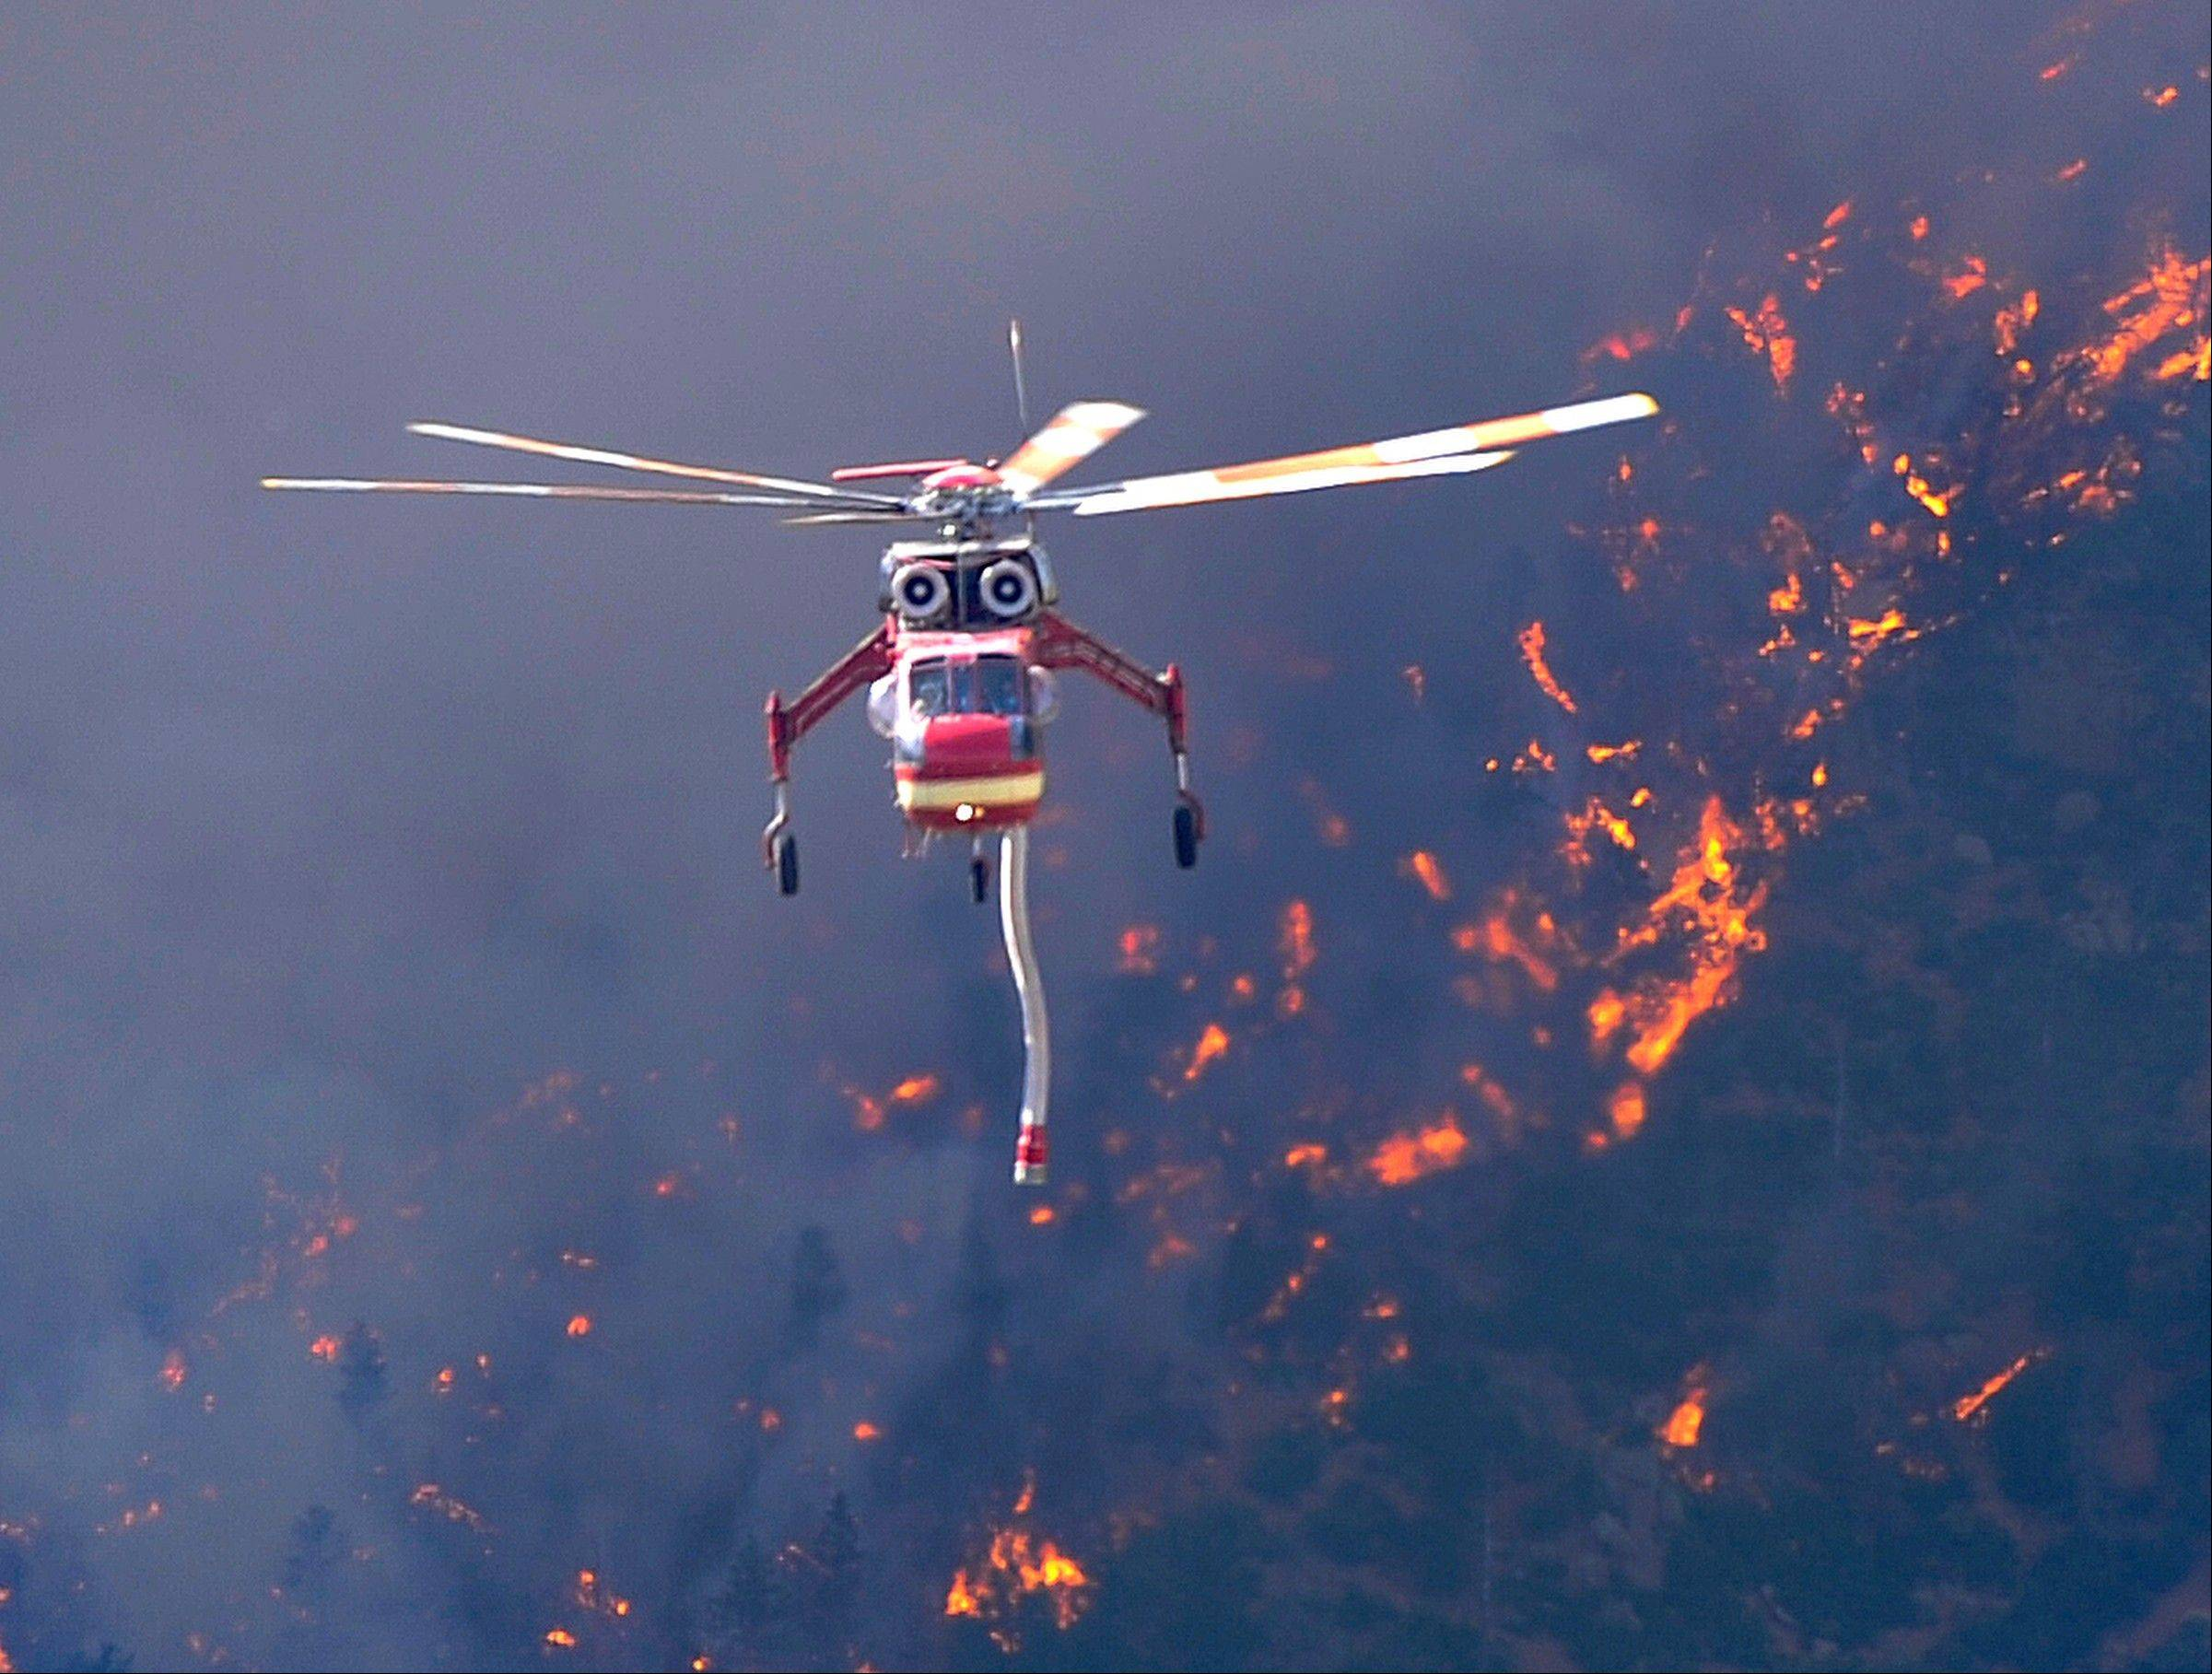 A helicopter returns to Glen Eyrie Reservoir to refill water tanks to fight the Waldo Canyon wildfire Tuesday, June 26, 2012. The Waldo Canyon fire spread to the north as afternoon winds spread embers into the air.